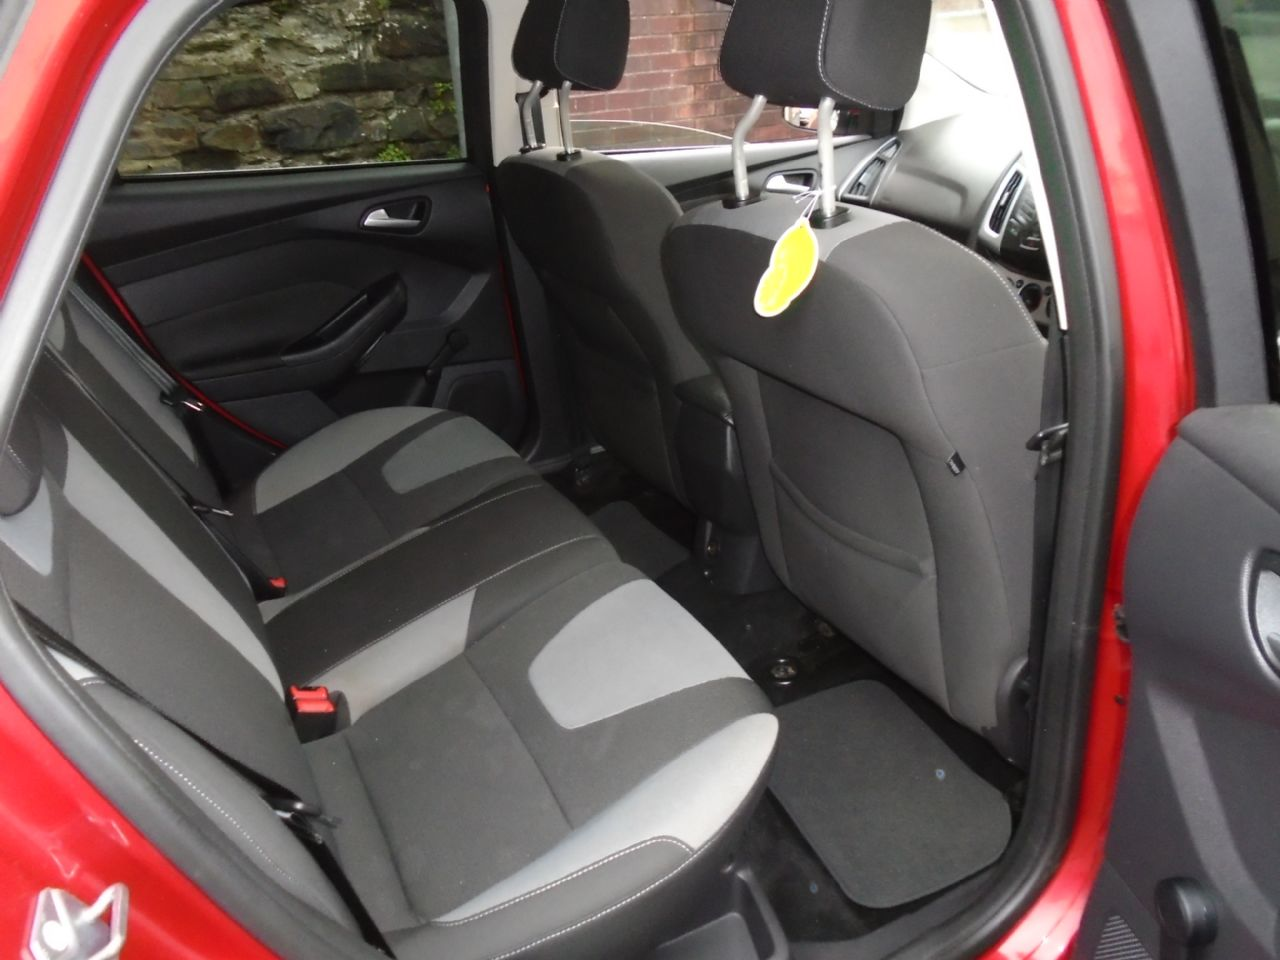 FORD Focus Zetec 1.6 Ti-VCT 125 PS - Picture 8